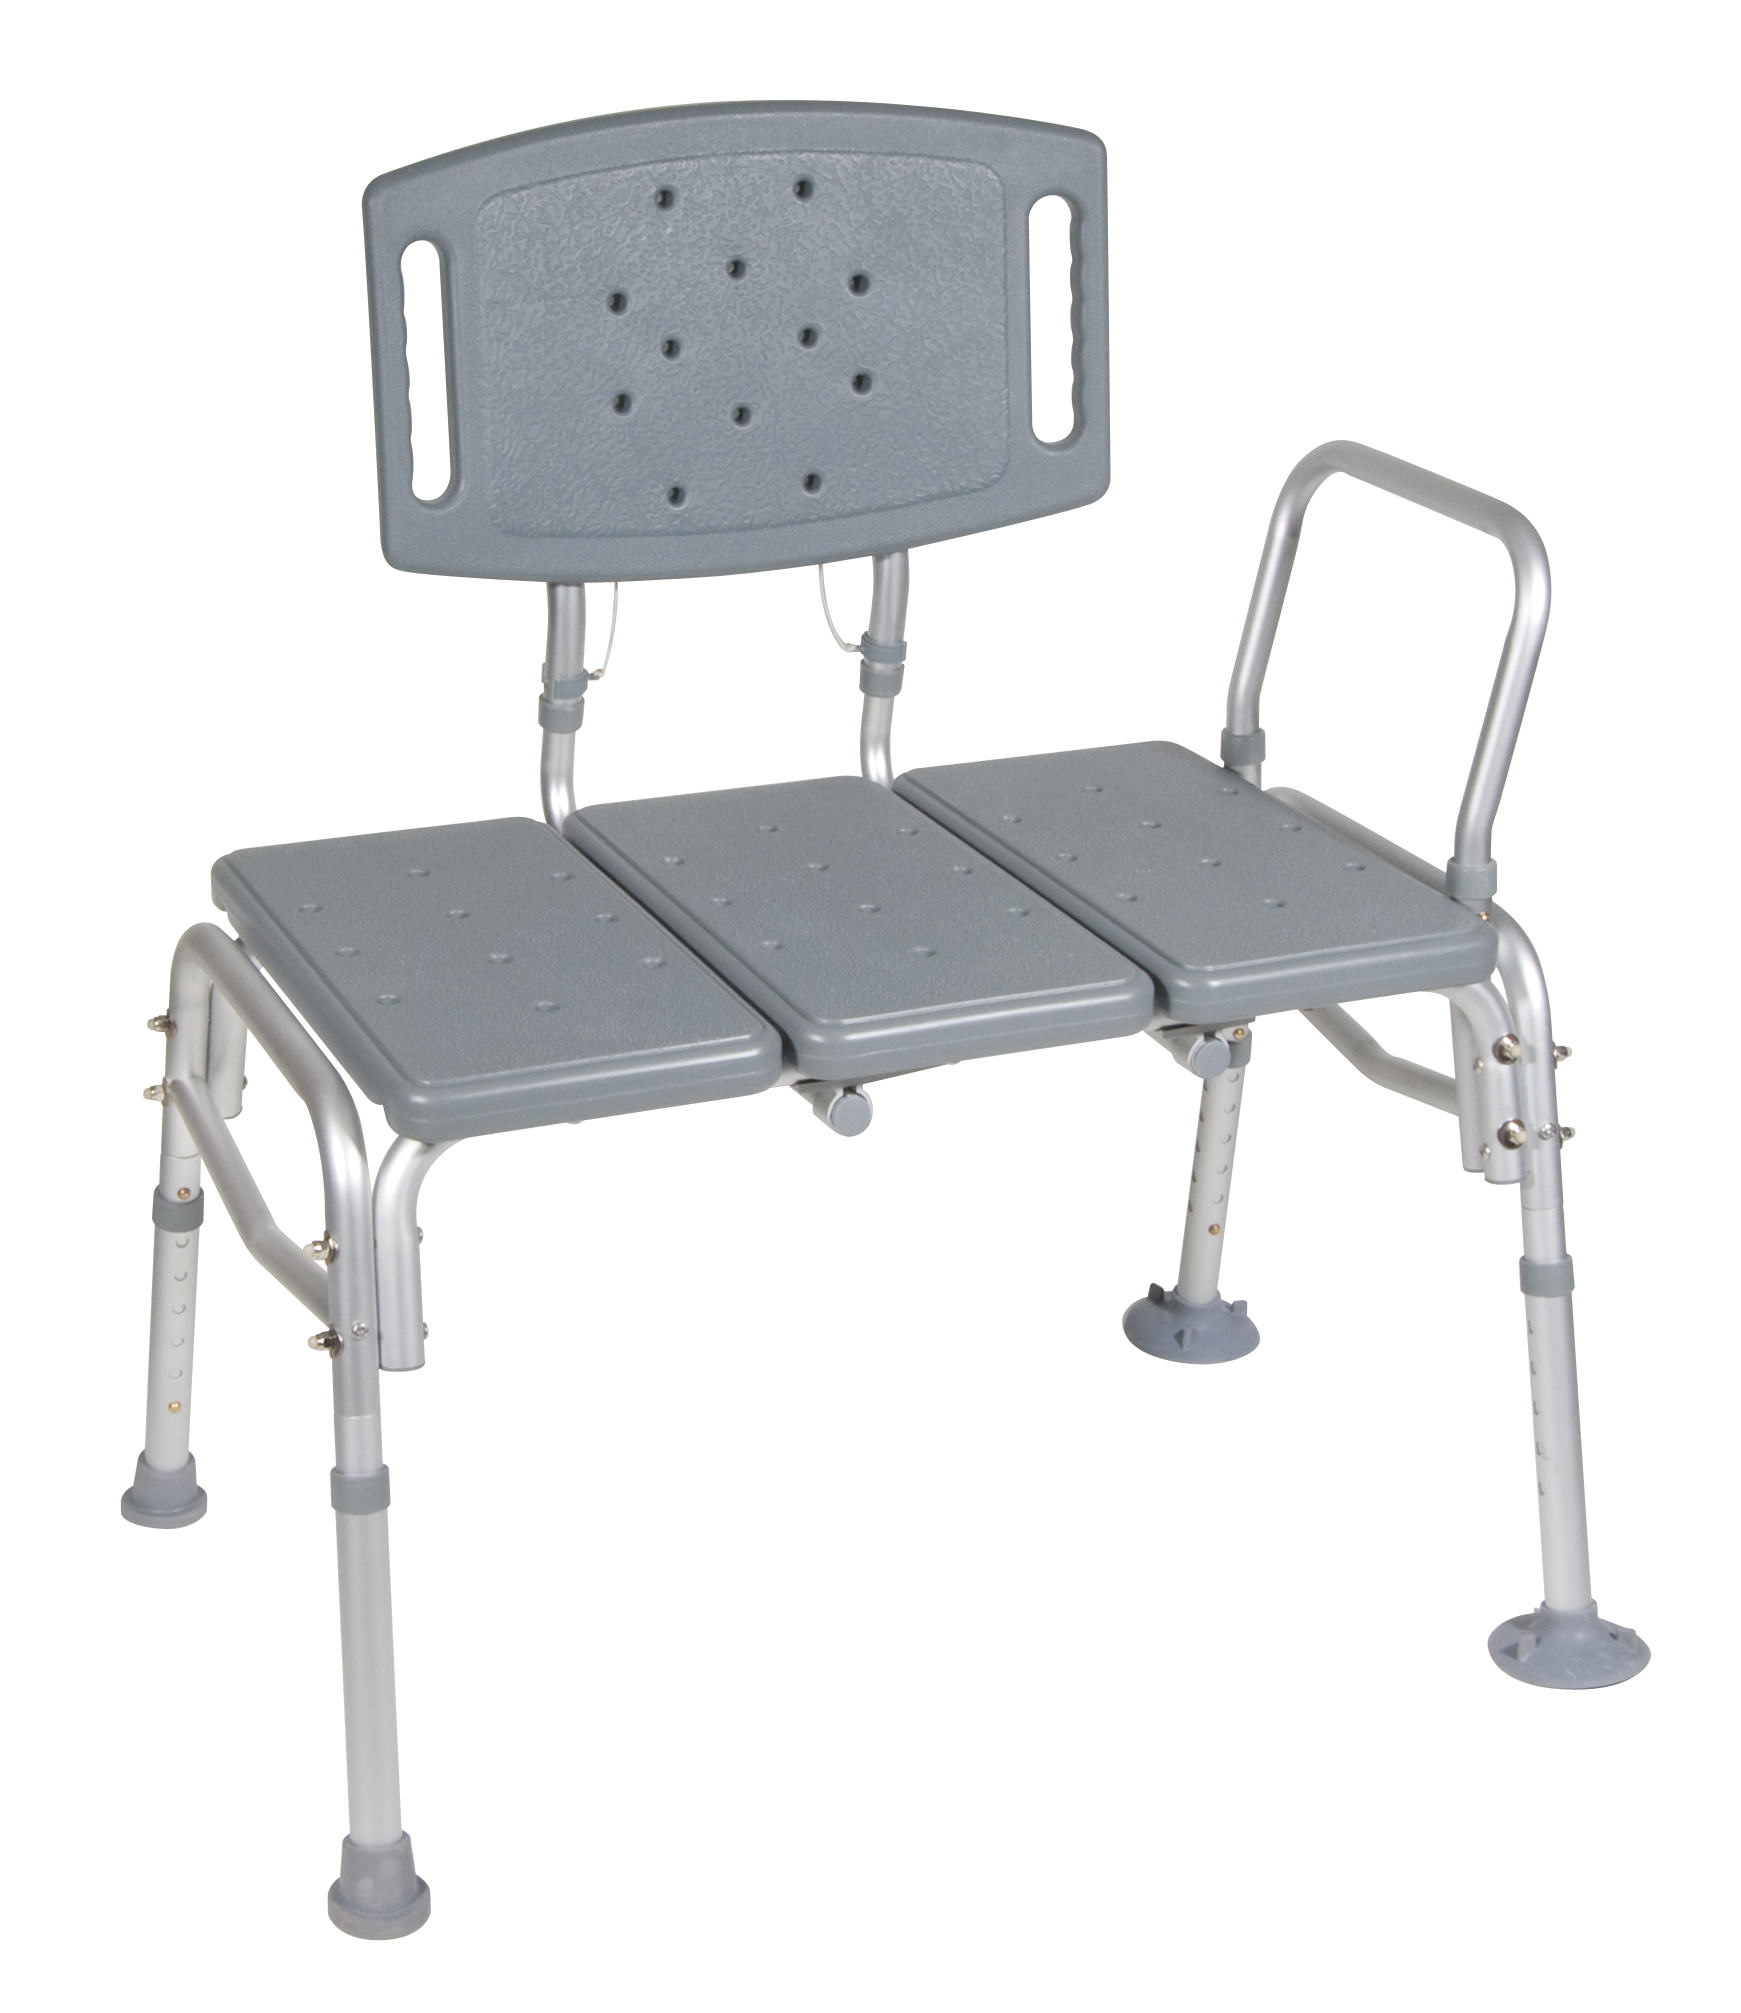 Galaxy Medical - Bedside Commodes and Rolling Shower Charis